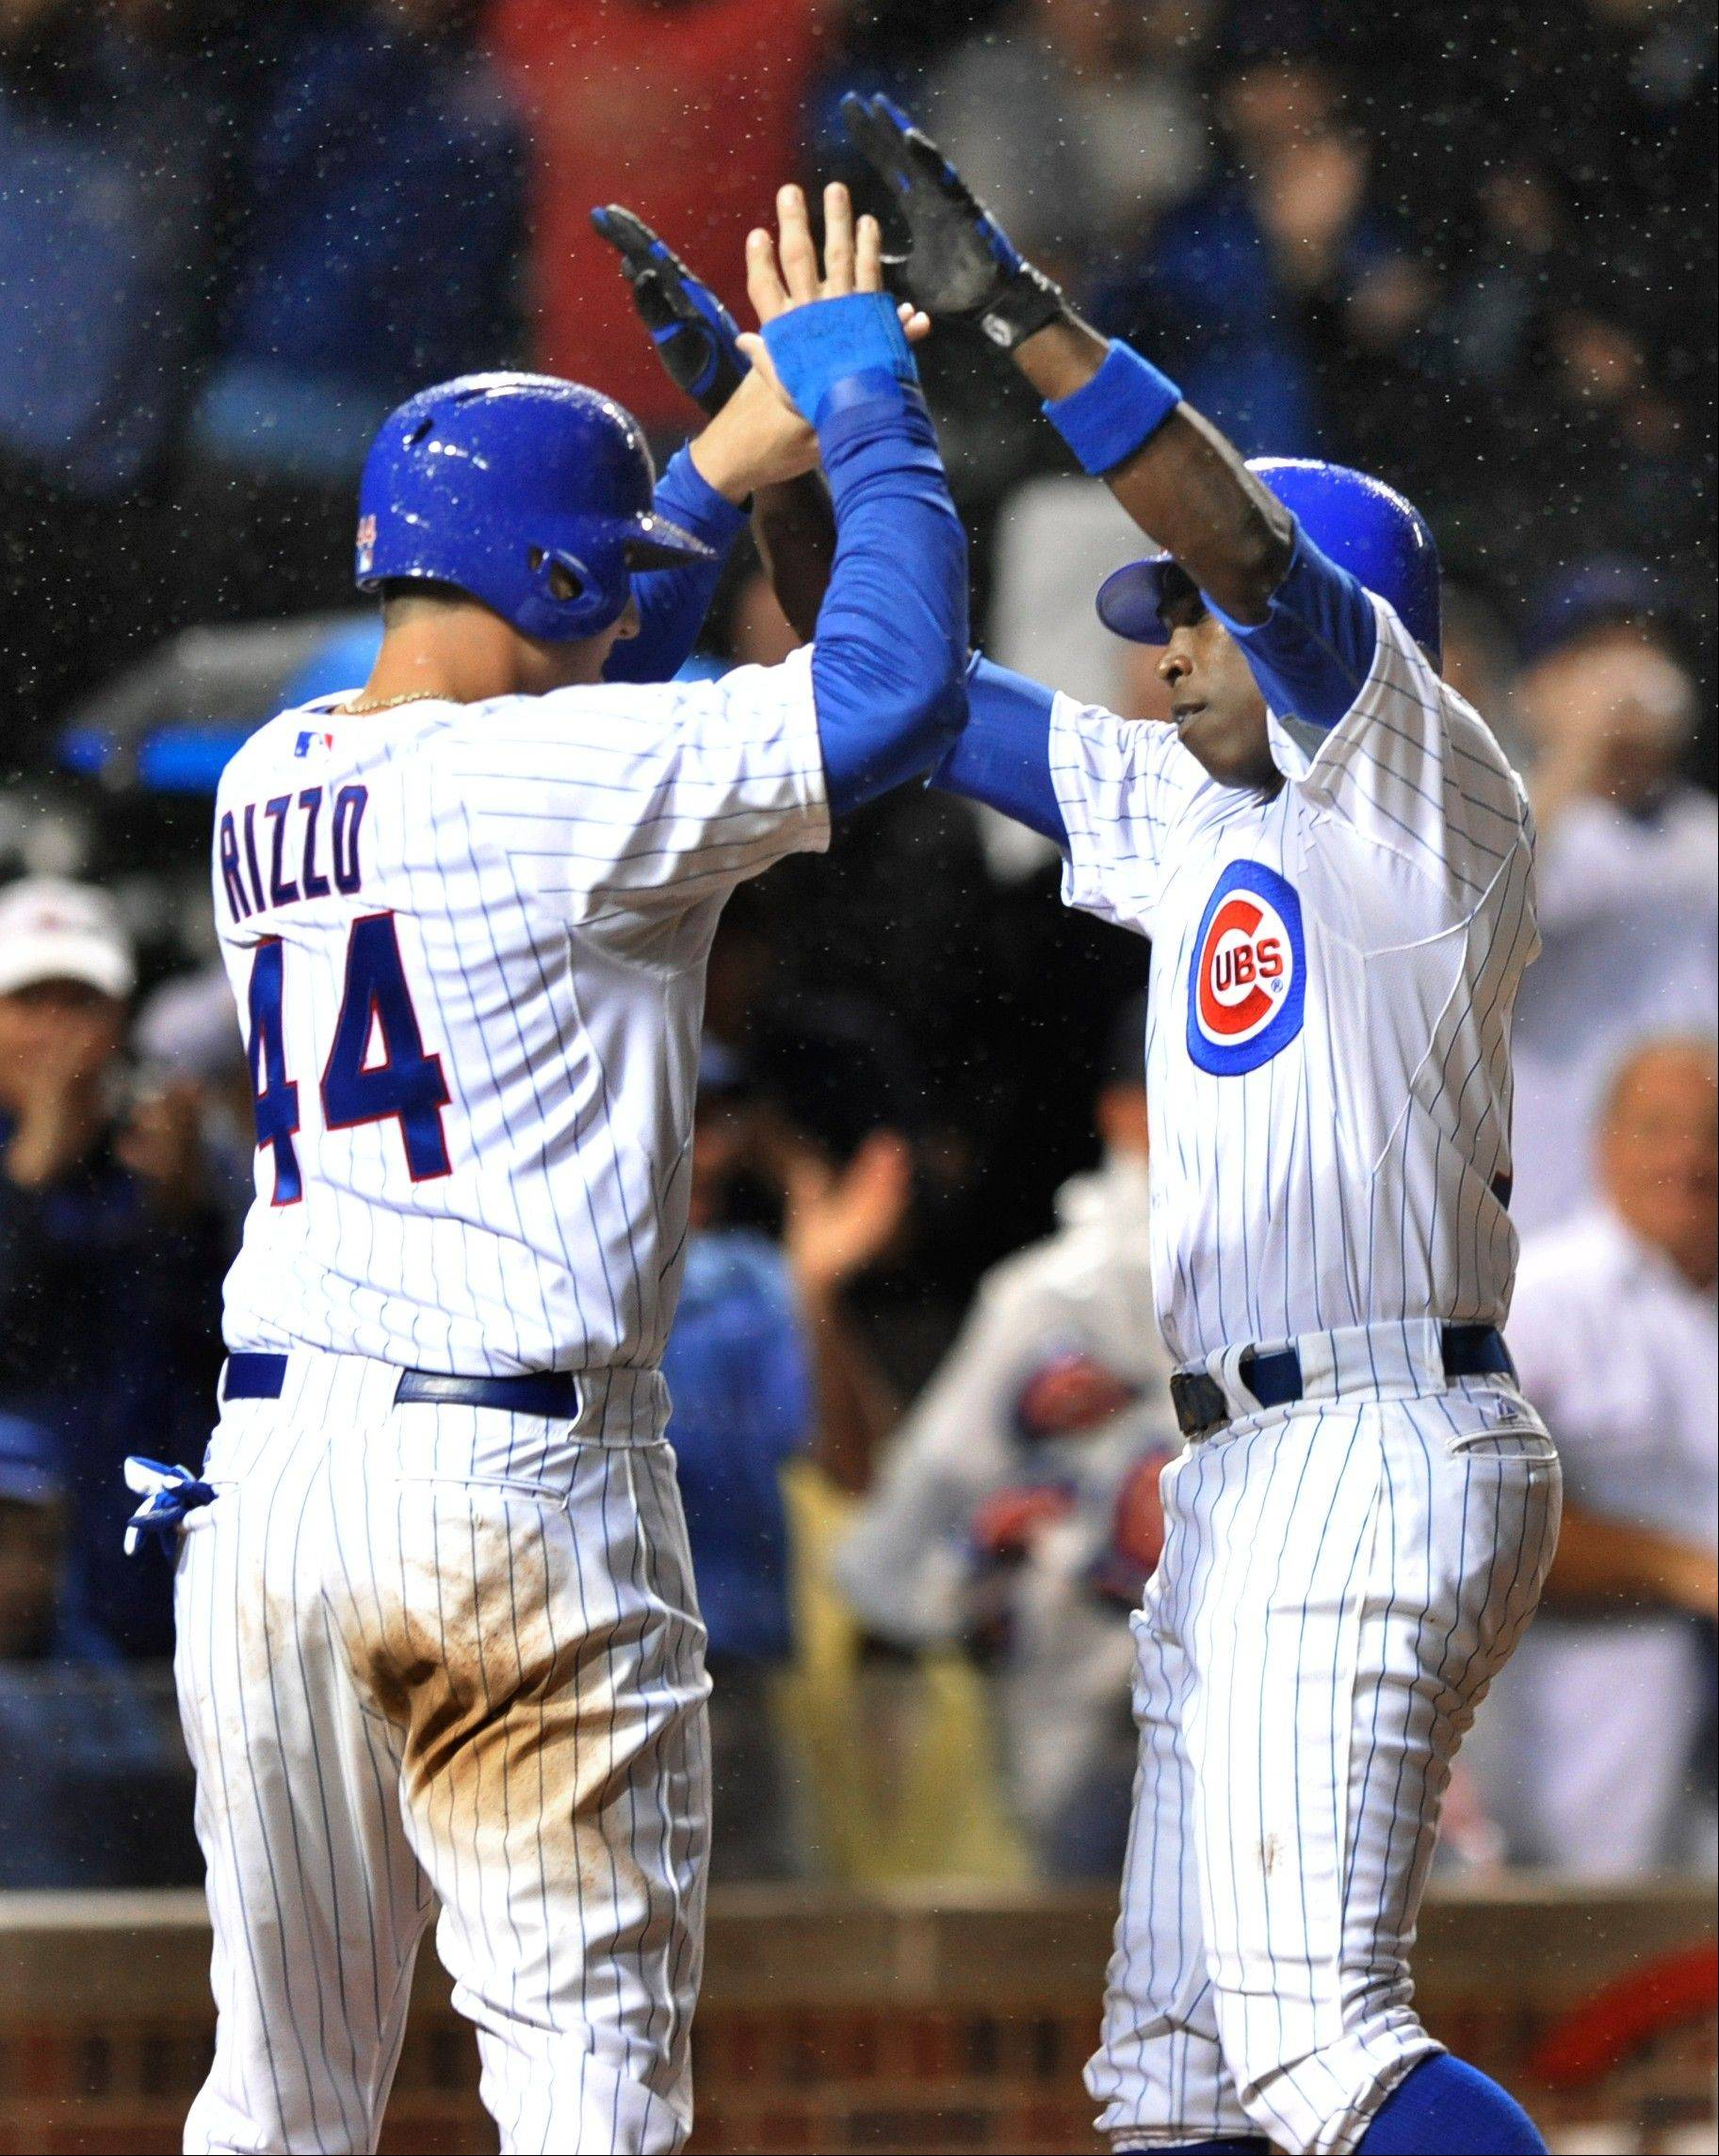 Alfonso Soriano right, celebrates with teammate Anthony Rizzo left, after hitting the game-winning 2-run homer Thursday against the Reds.The home run was Soriano's 20th of the season. It marked the 11th straight year he has hit at least 20. He joined Albert Pujols and David Ortiz as the only sluggers to have 11 consecutive 20-plus-homer seasons, including 2012